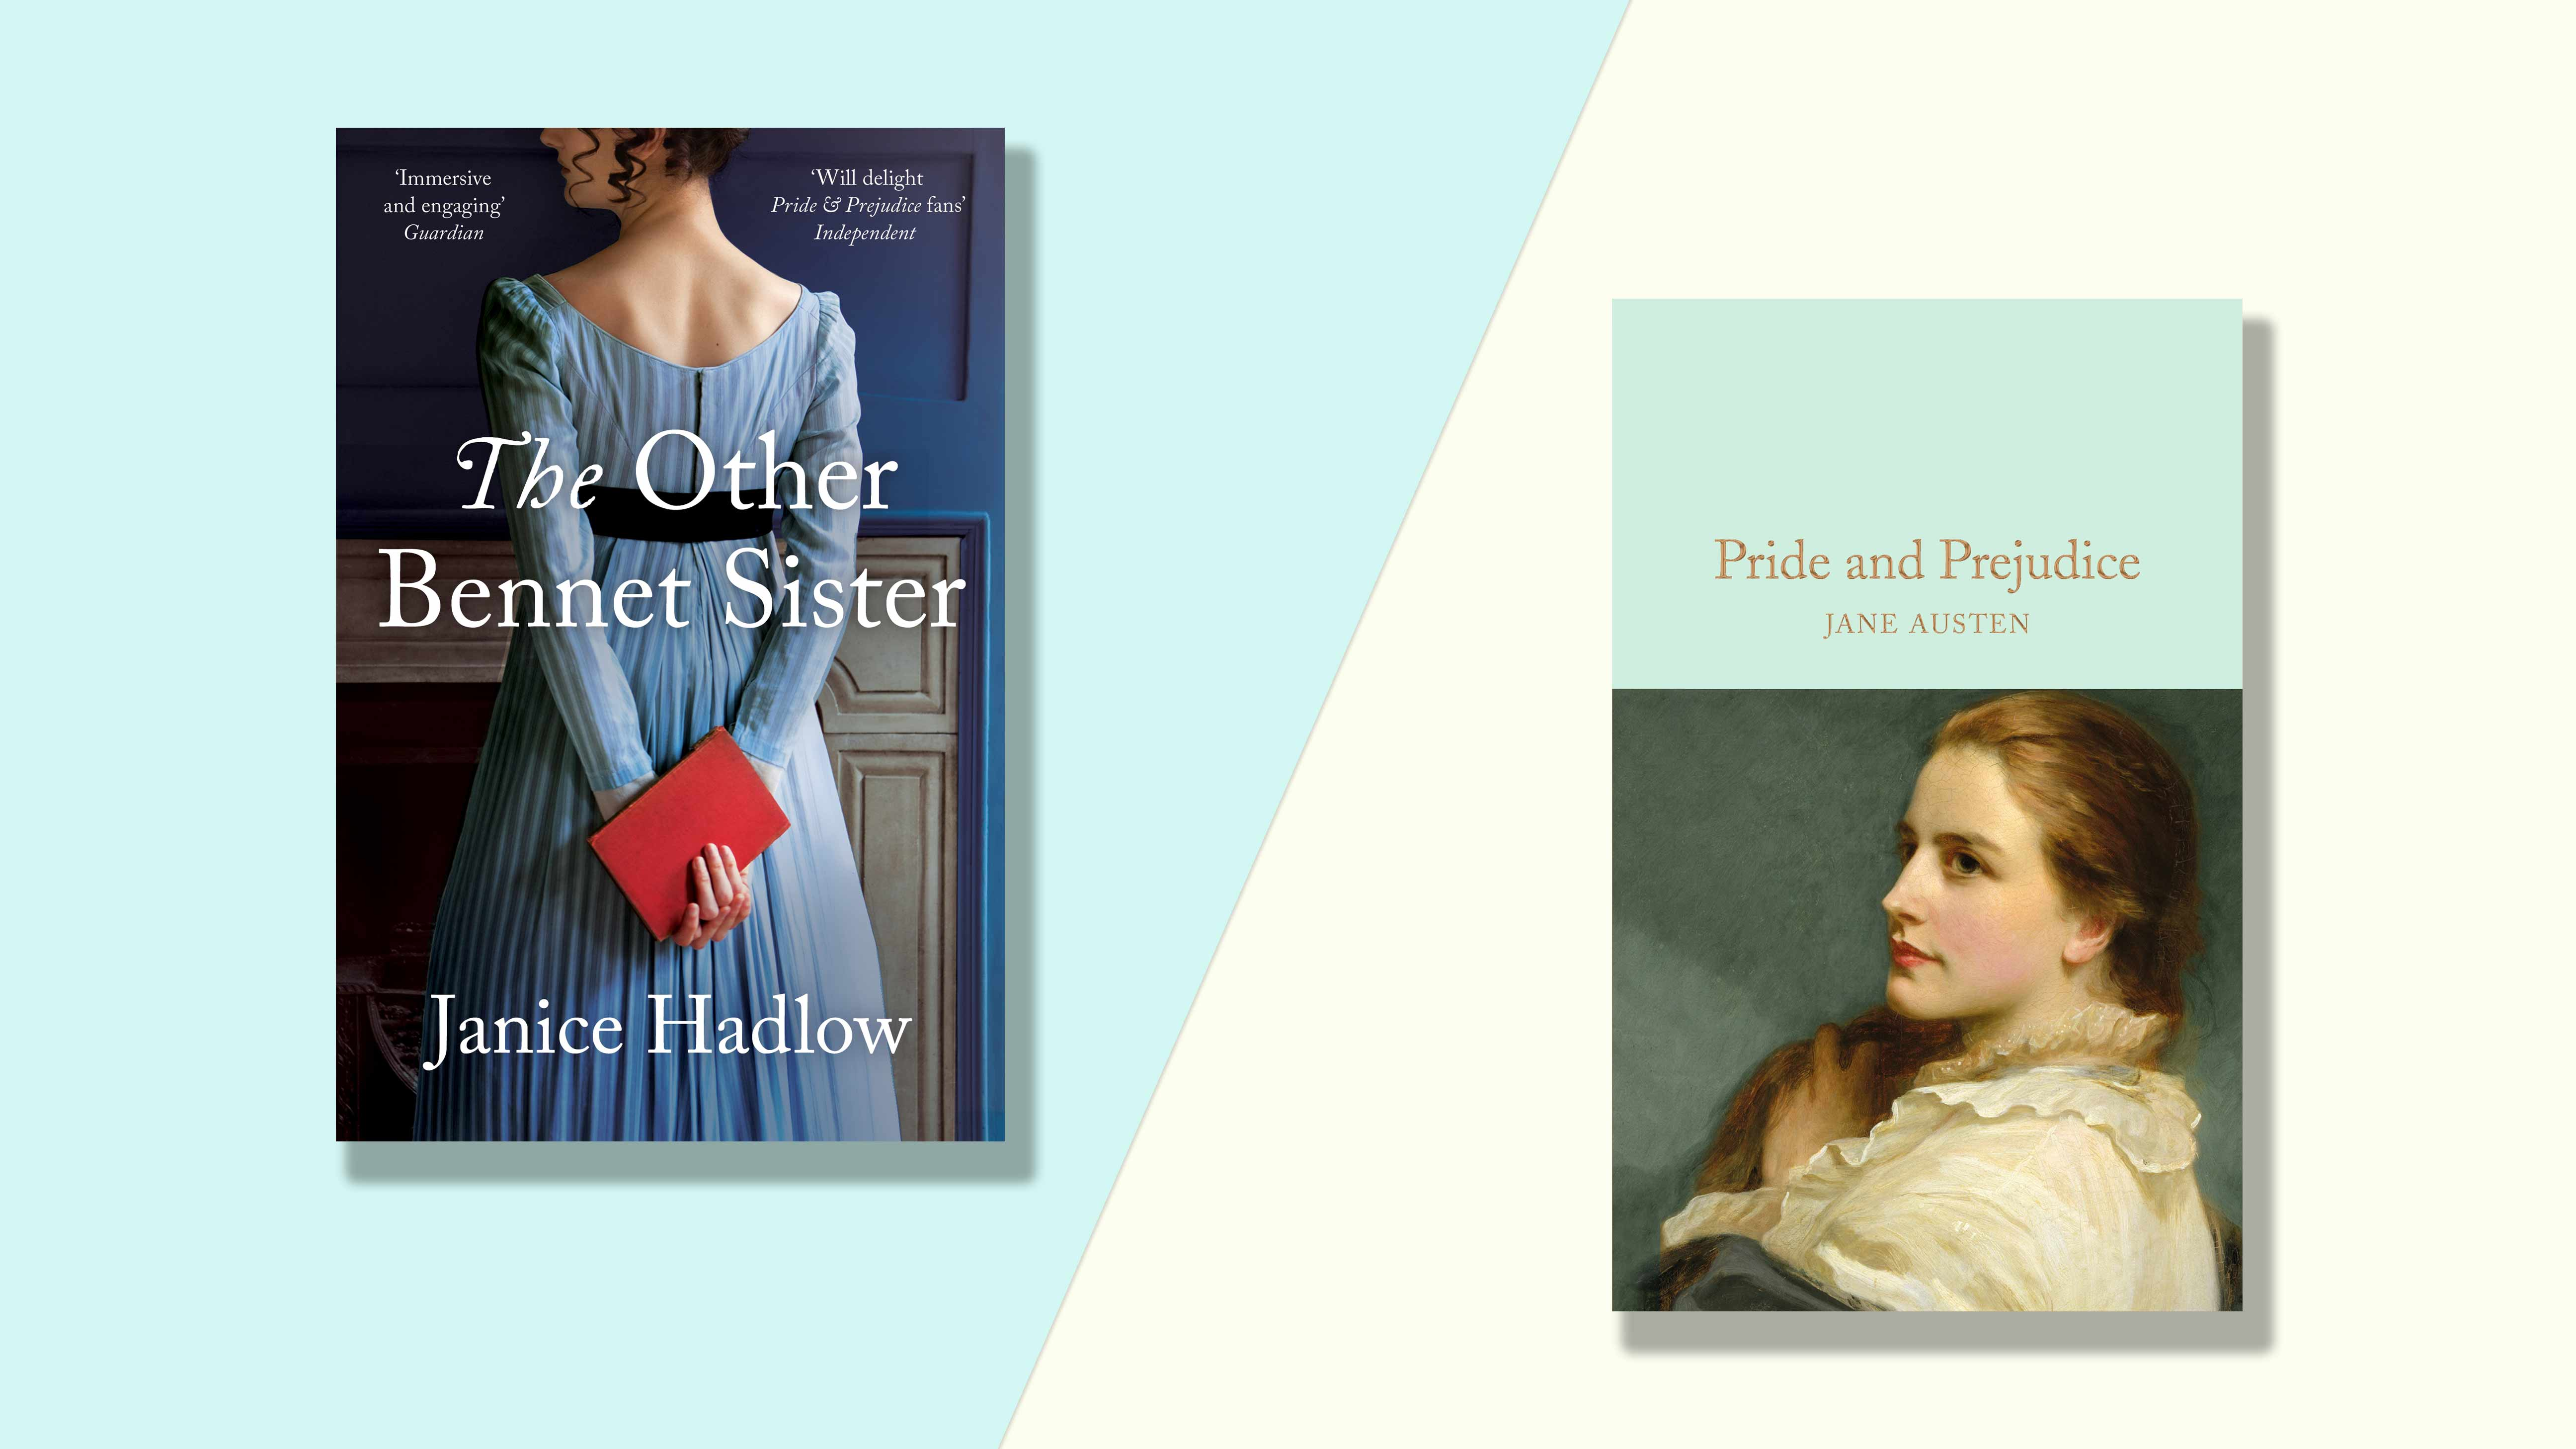 The Other Bennet Sister and Pride and Prejudice book covers